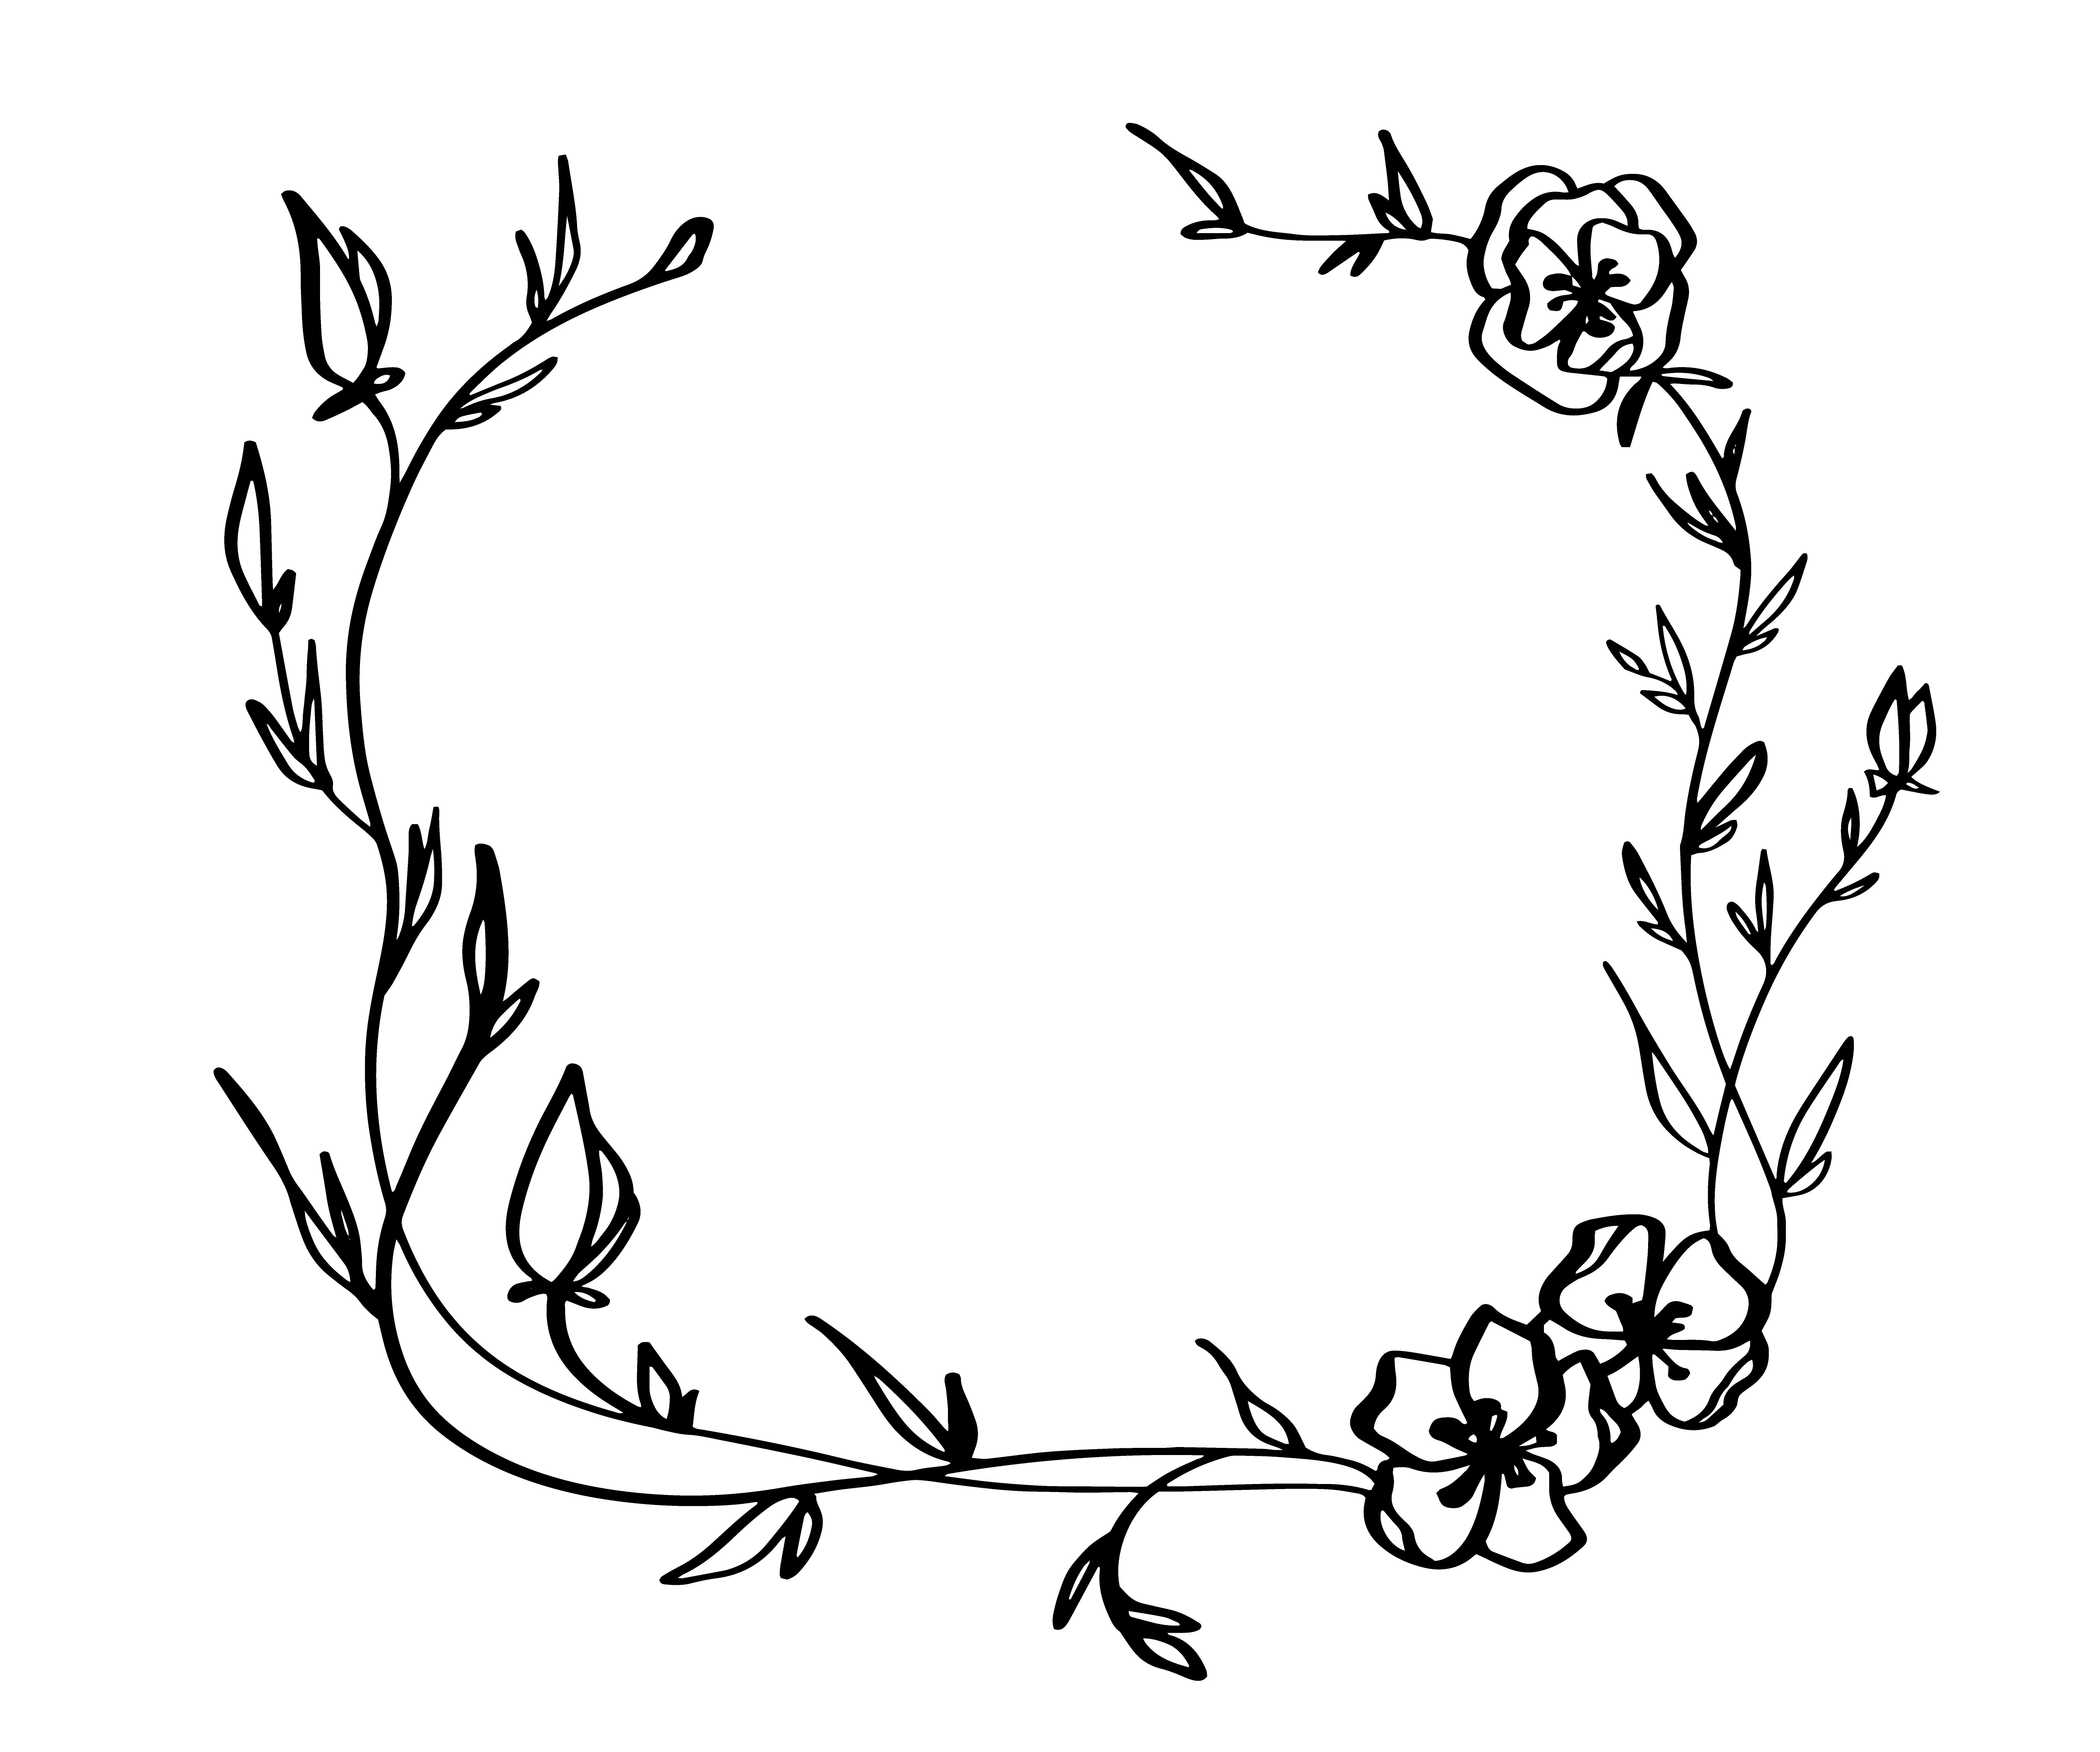 Lavender Flowers Decorative Wreath Isolated On White